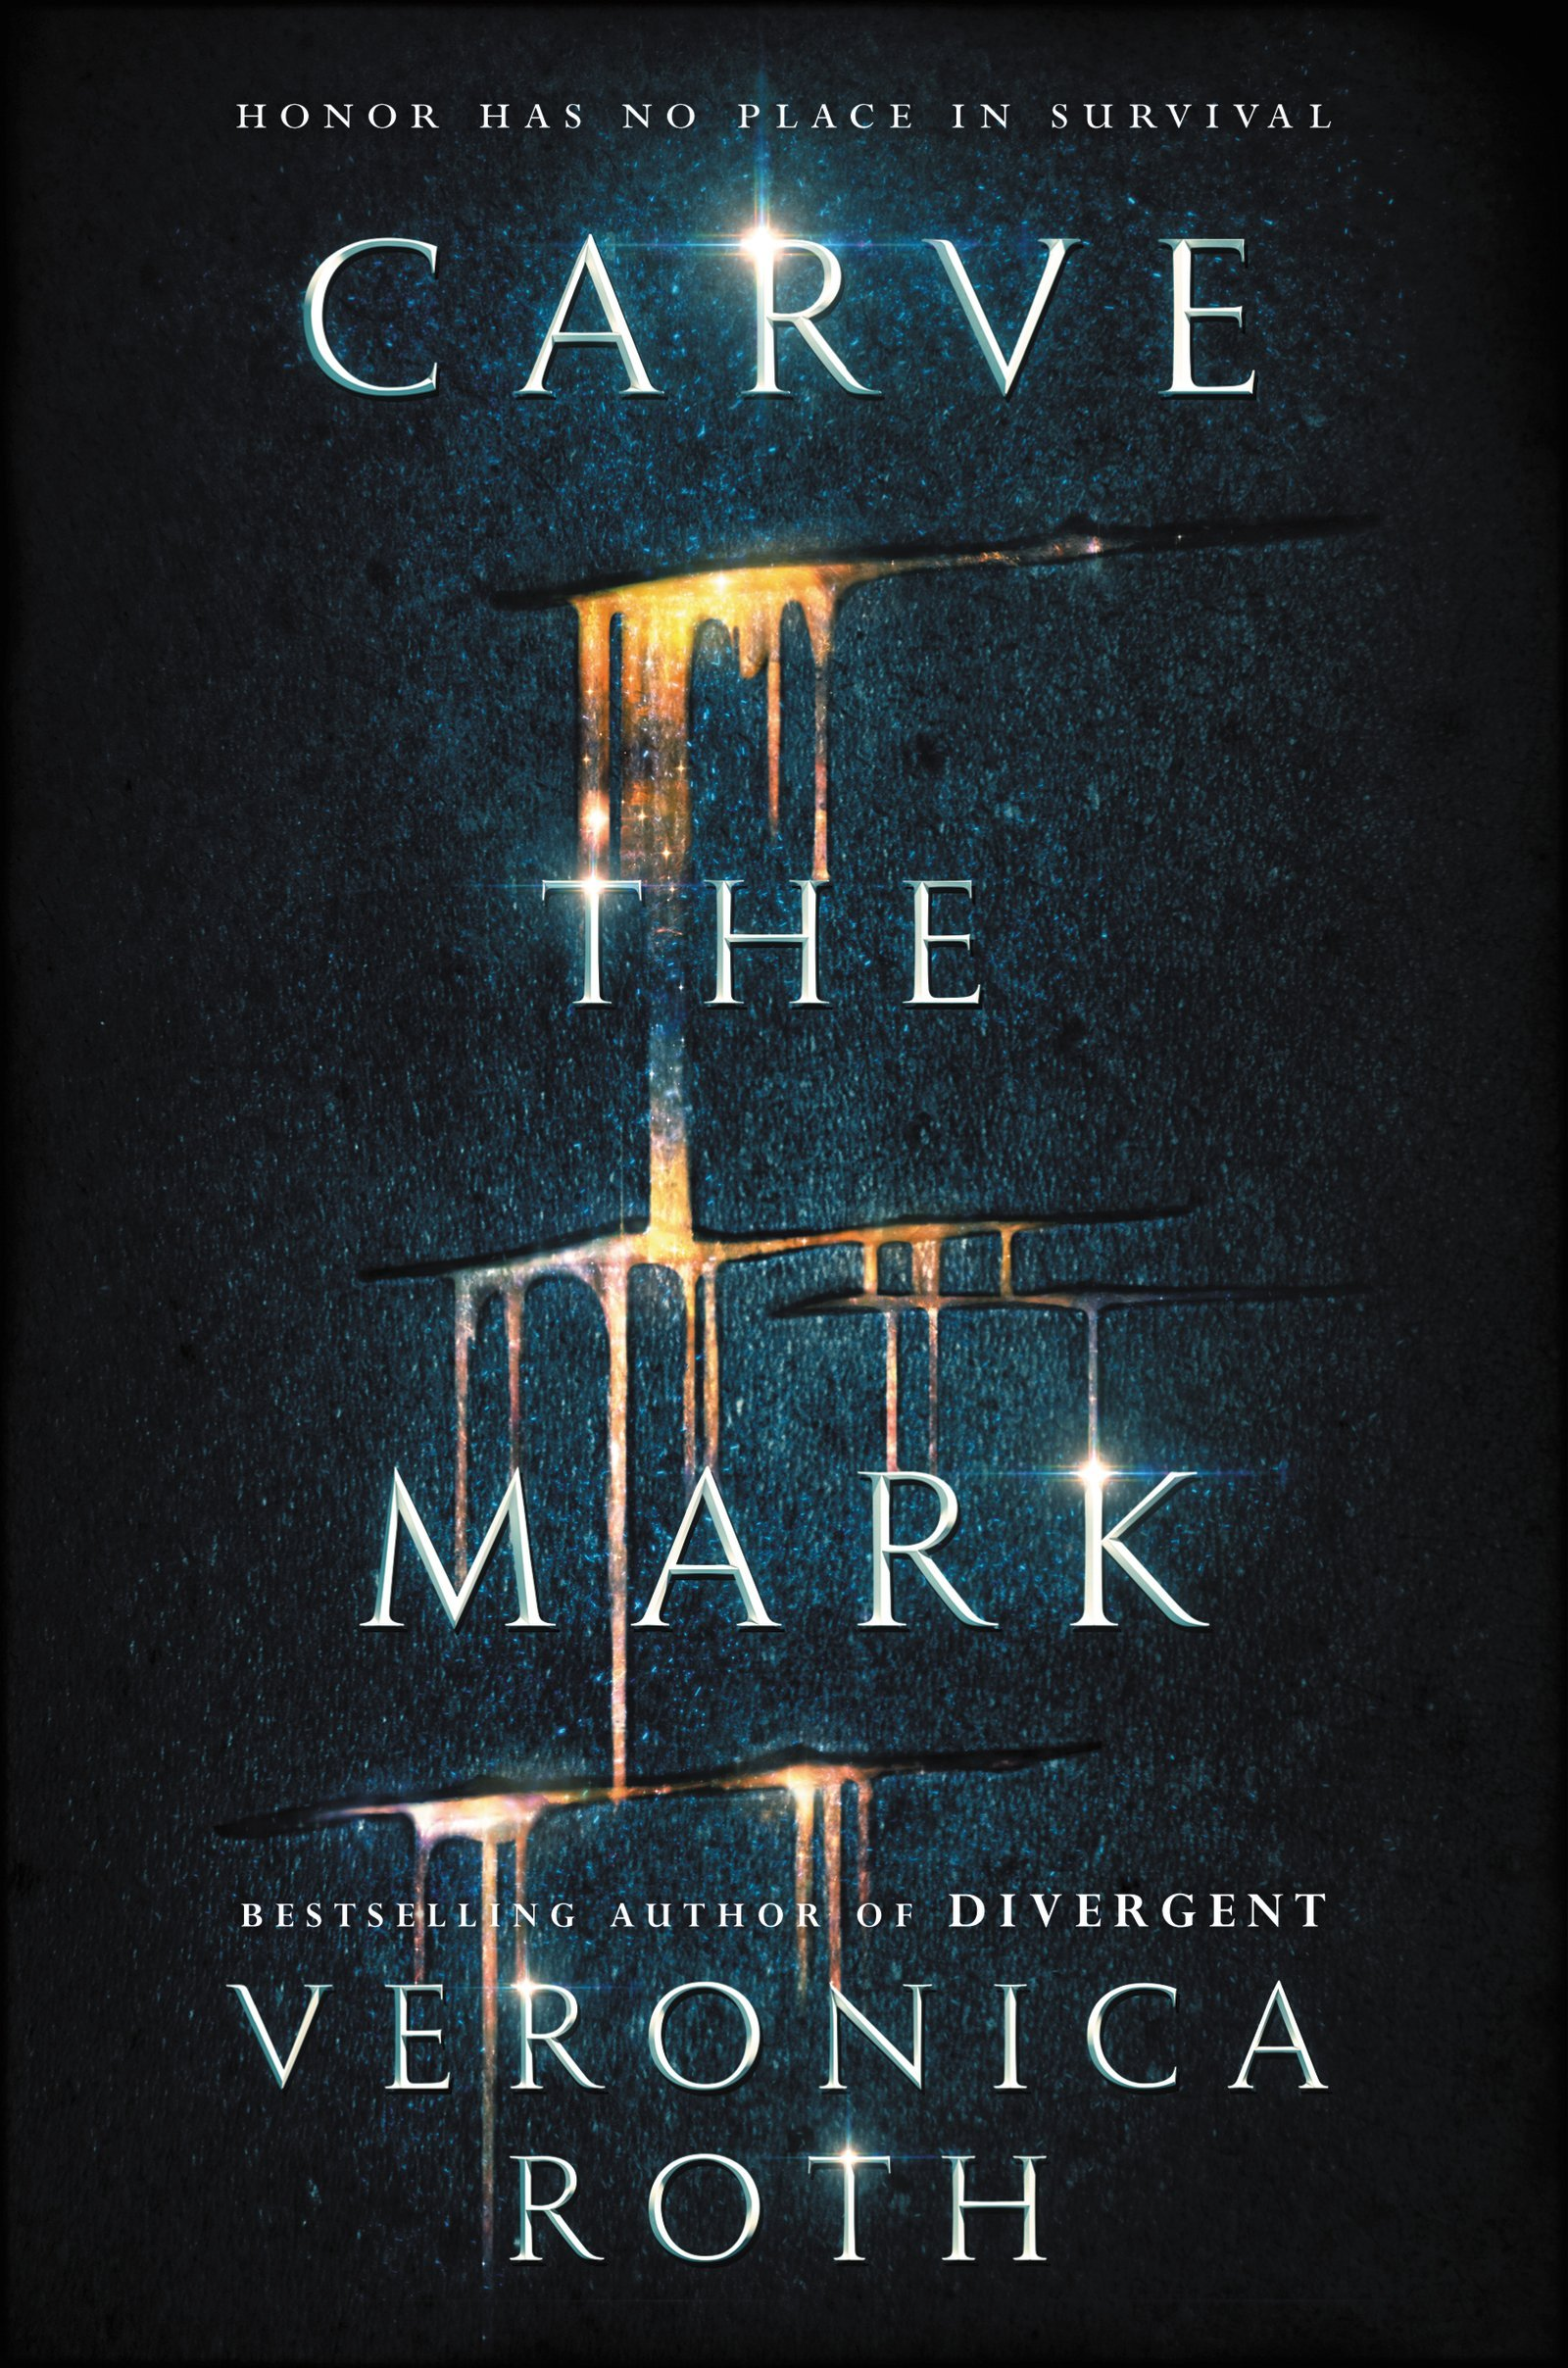 Buy Carve The Mark Now!